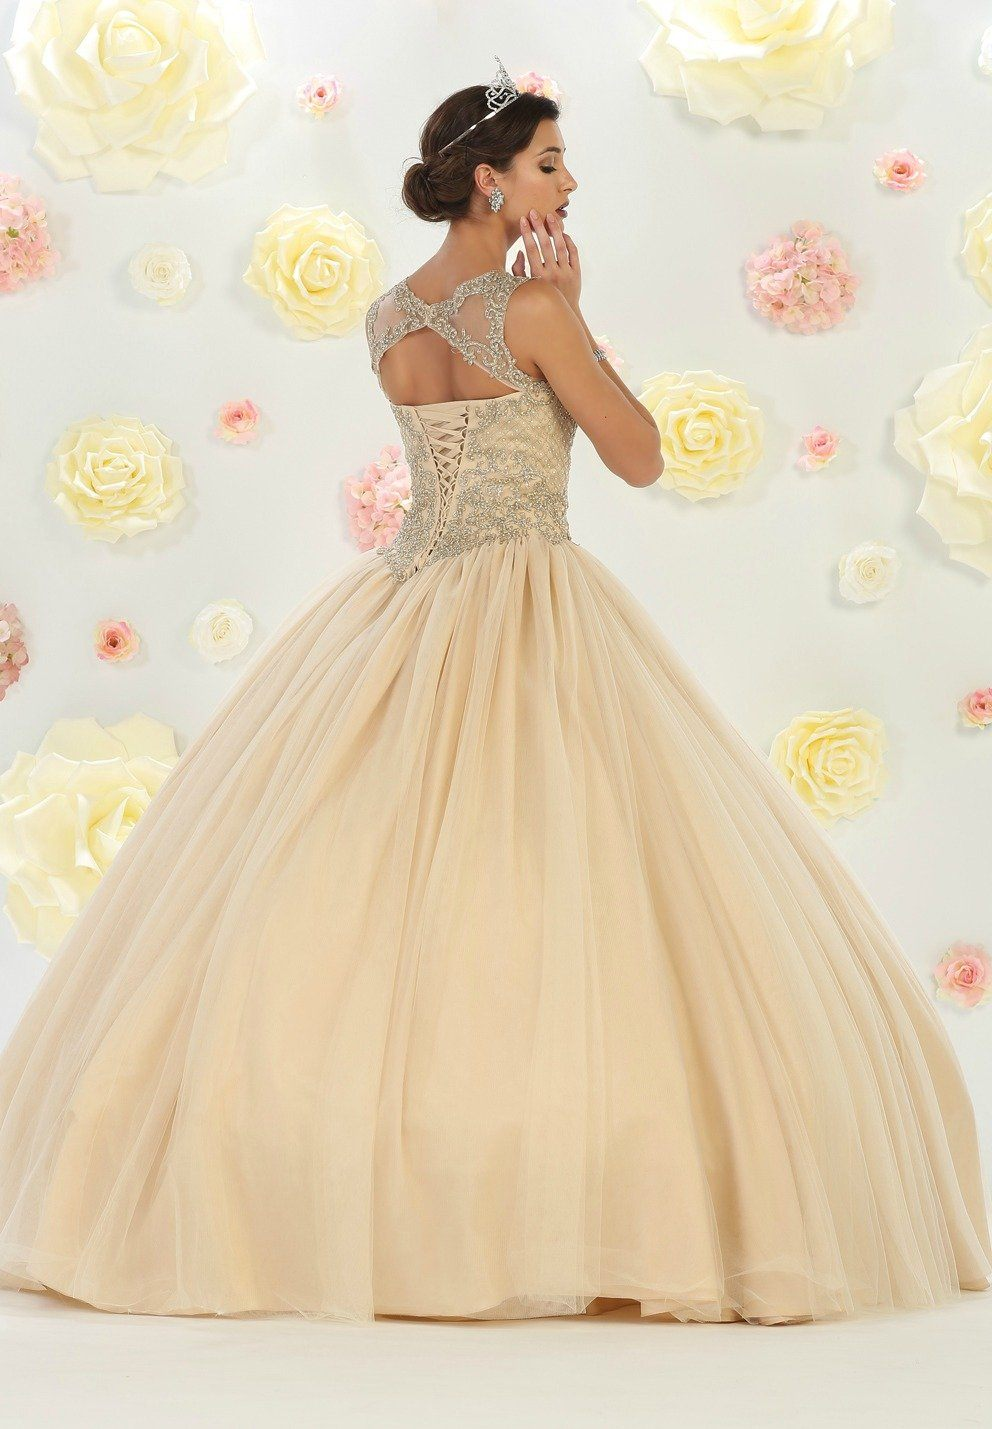 * Long High Neck Illusion Champagne (Light Gold) Ball Gown